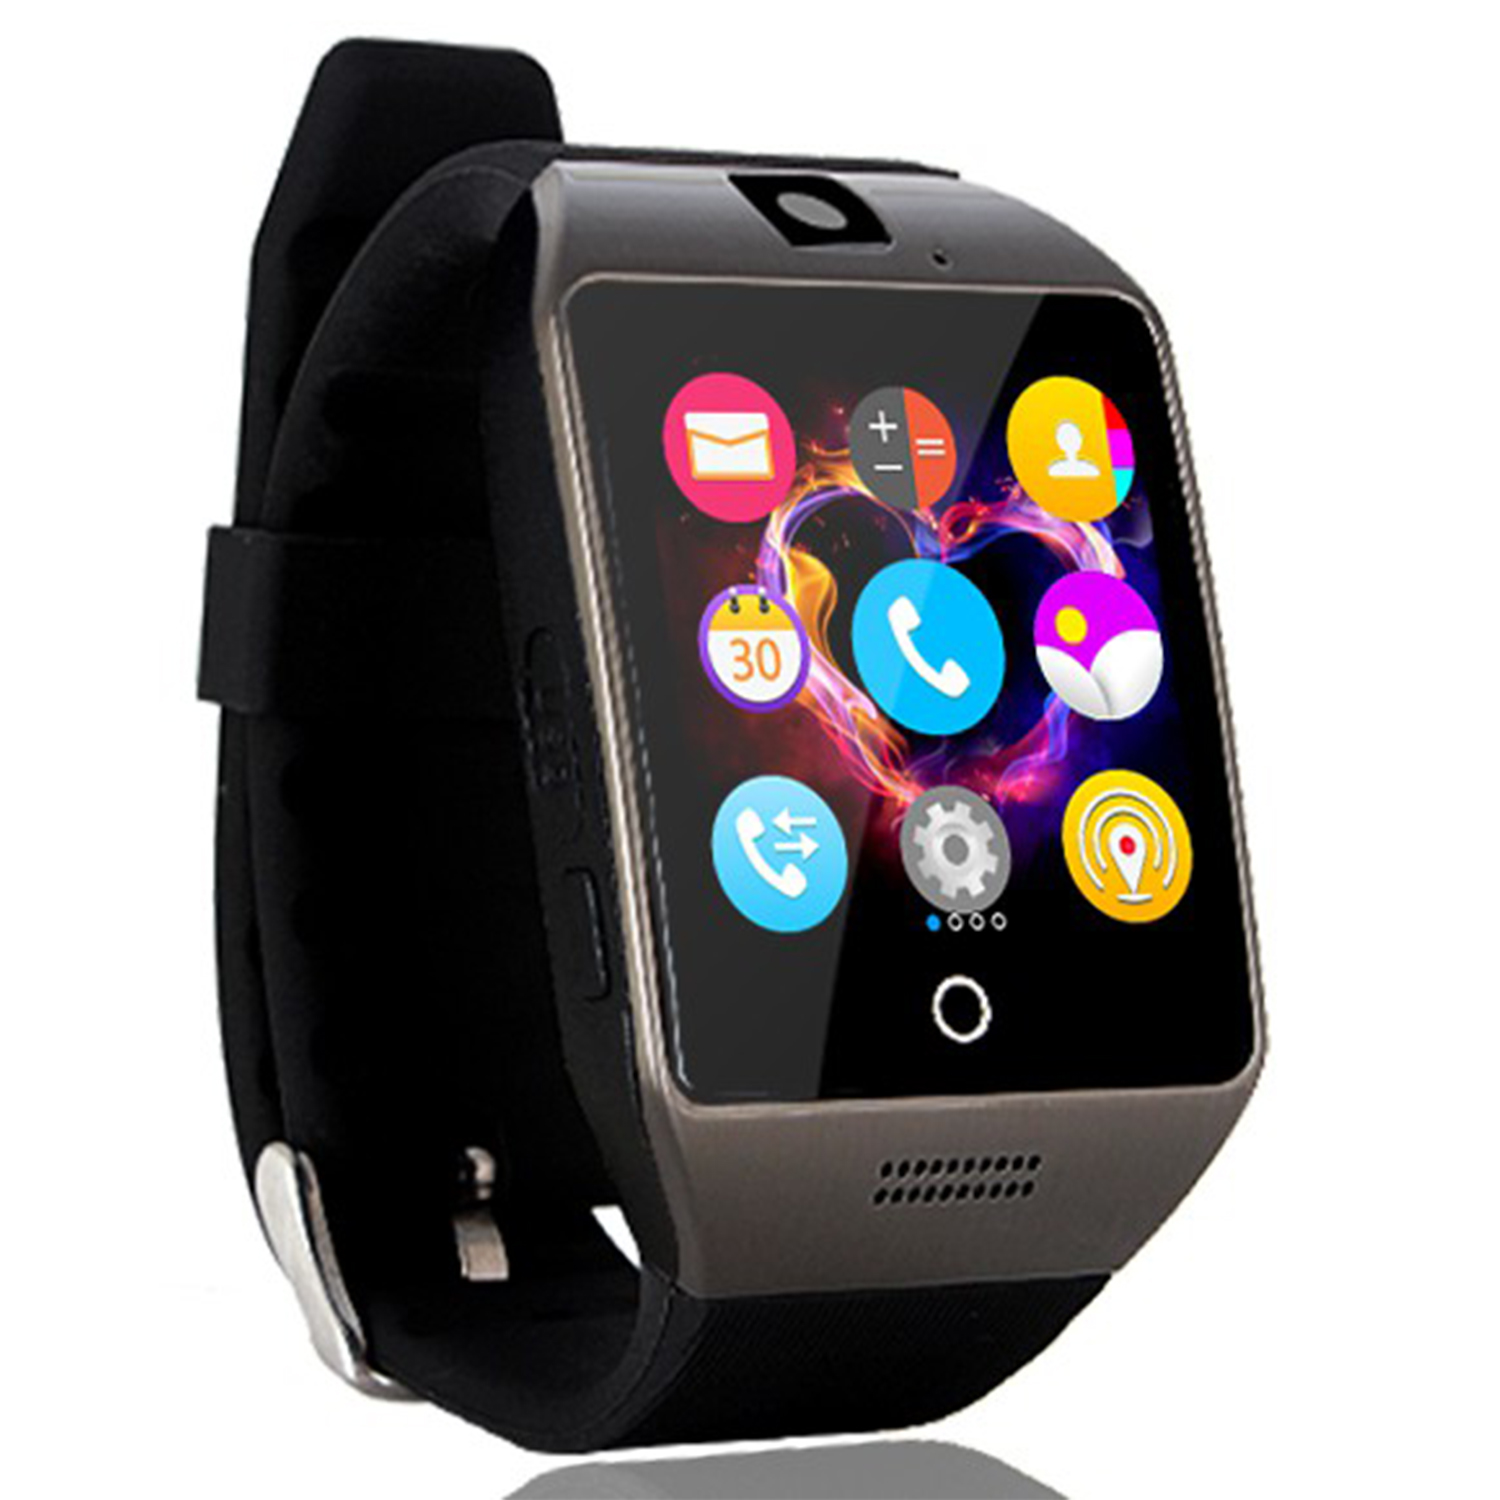 dae303648 Apple Watch   Smart Watch. Electronics+ · Wearable Technology+